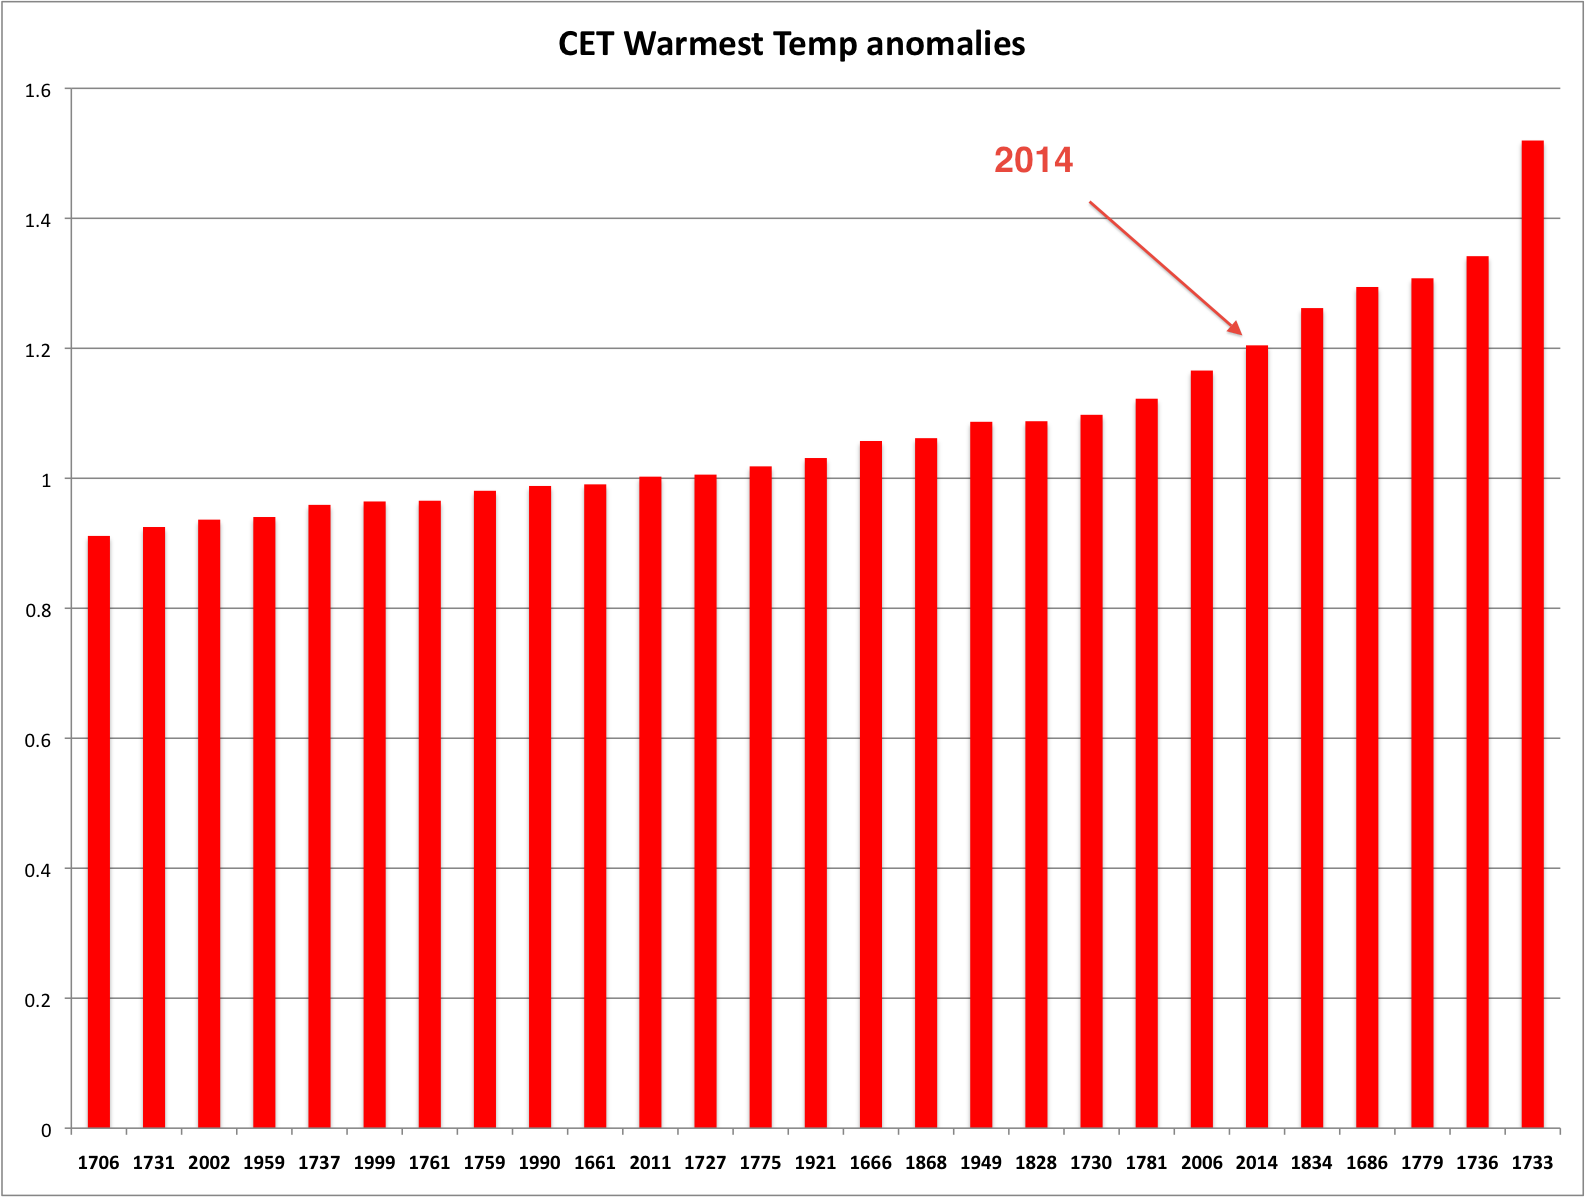 Ranked warmest years based on temperature anomalies to long term trends.